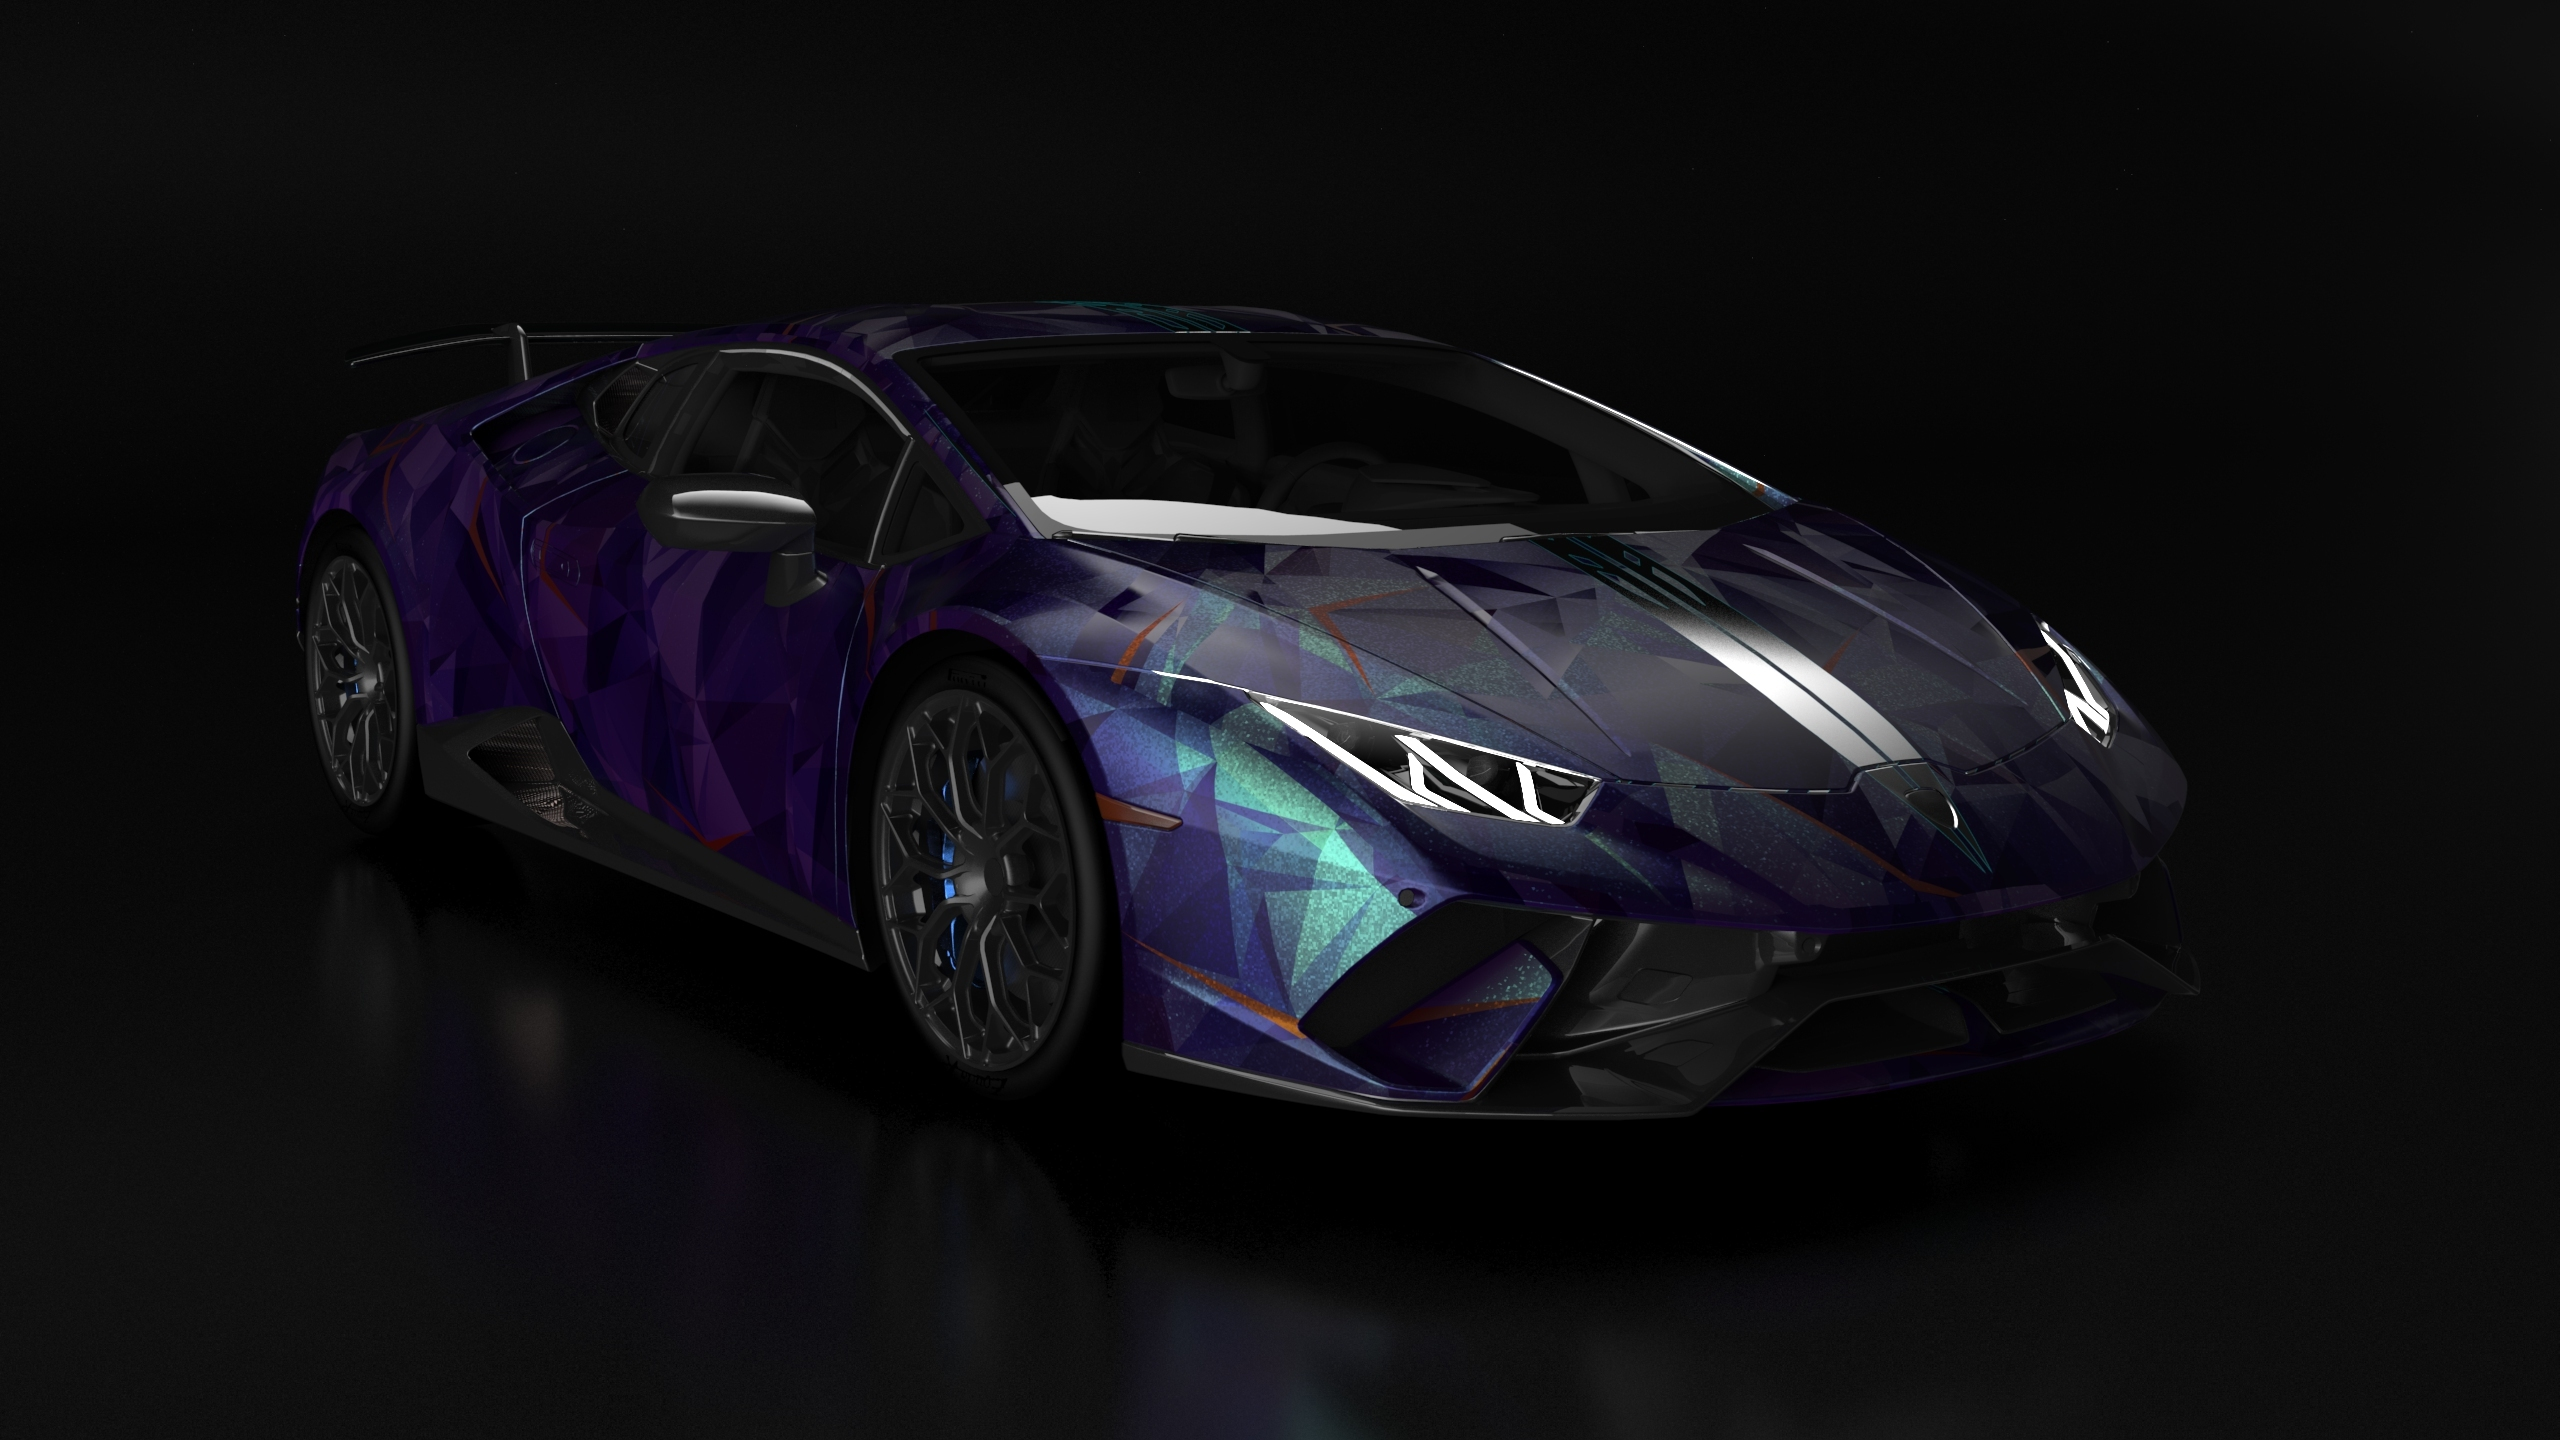 2560x1440 Lamborghini Huracan Blue And Black 1440p